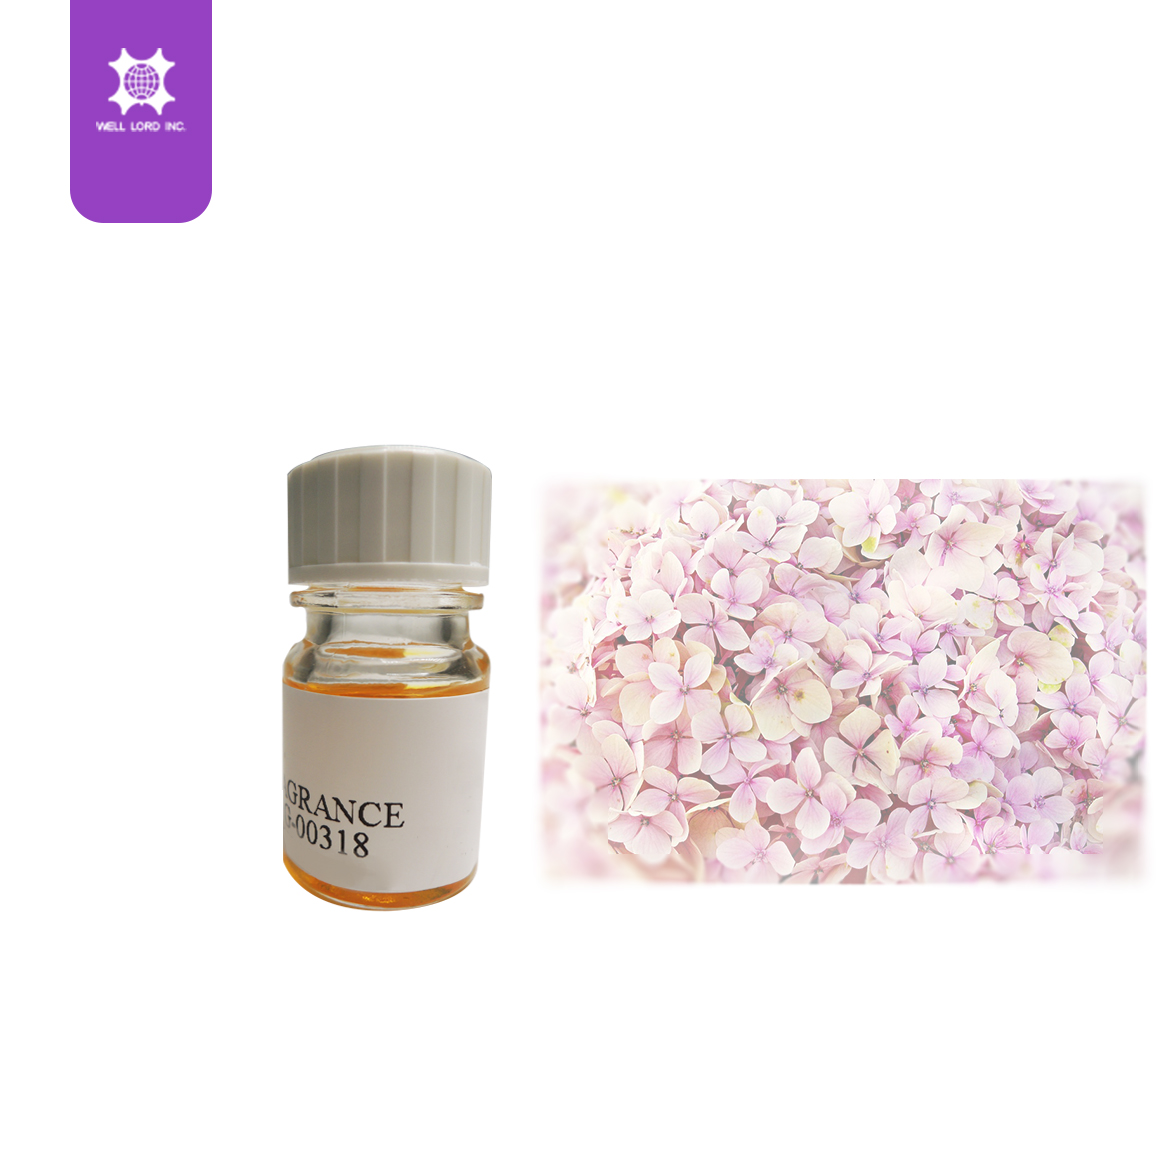 Lovely sweet floral with a little bit of spiciness sexy lady original perfume fragrance oil